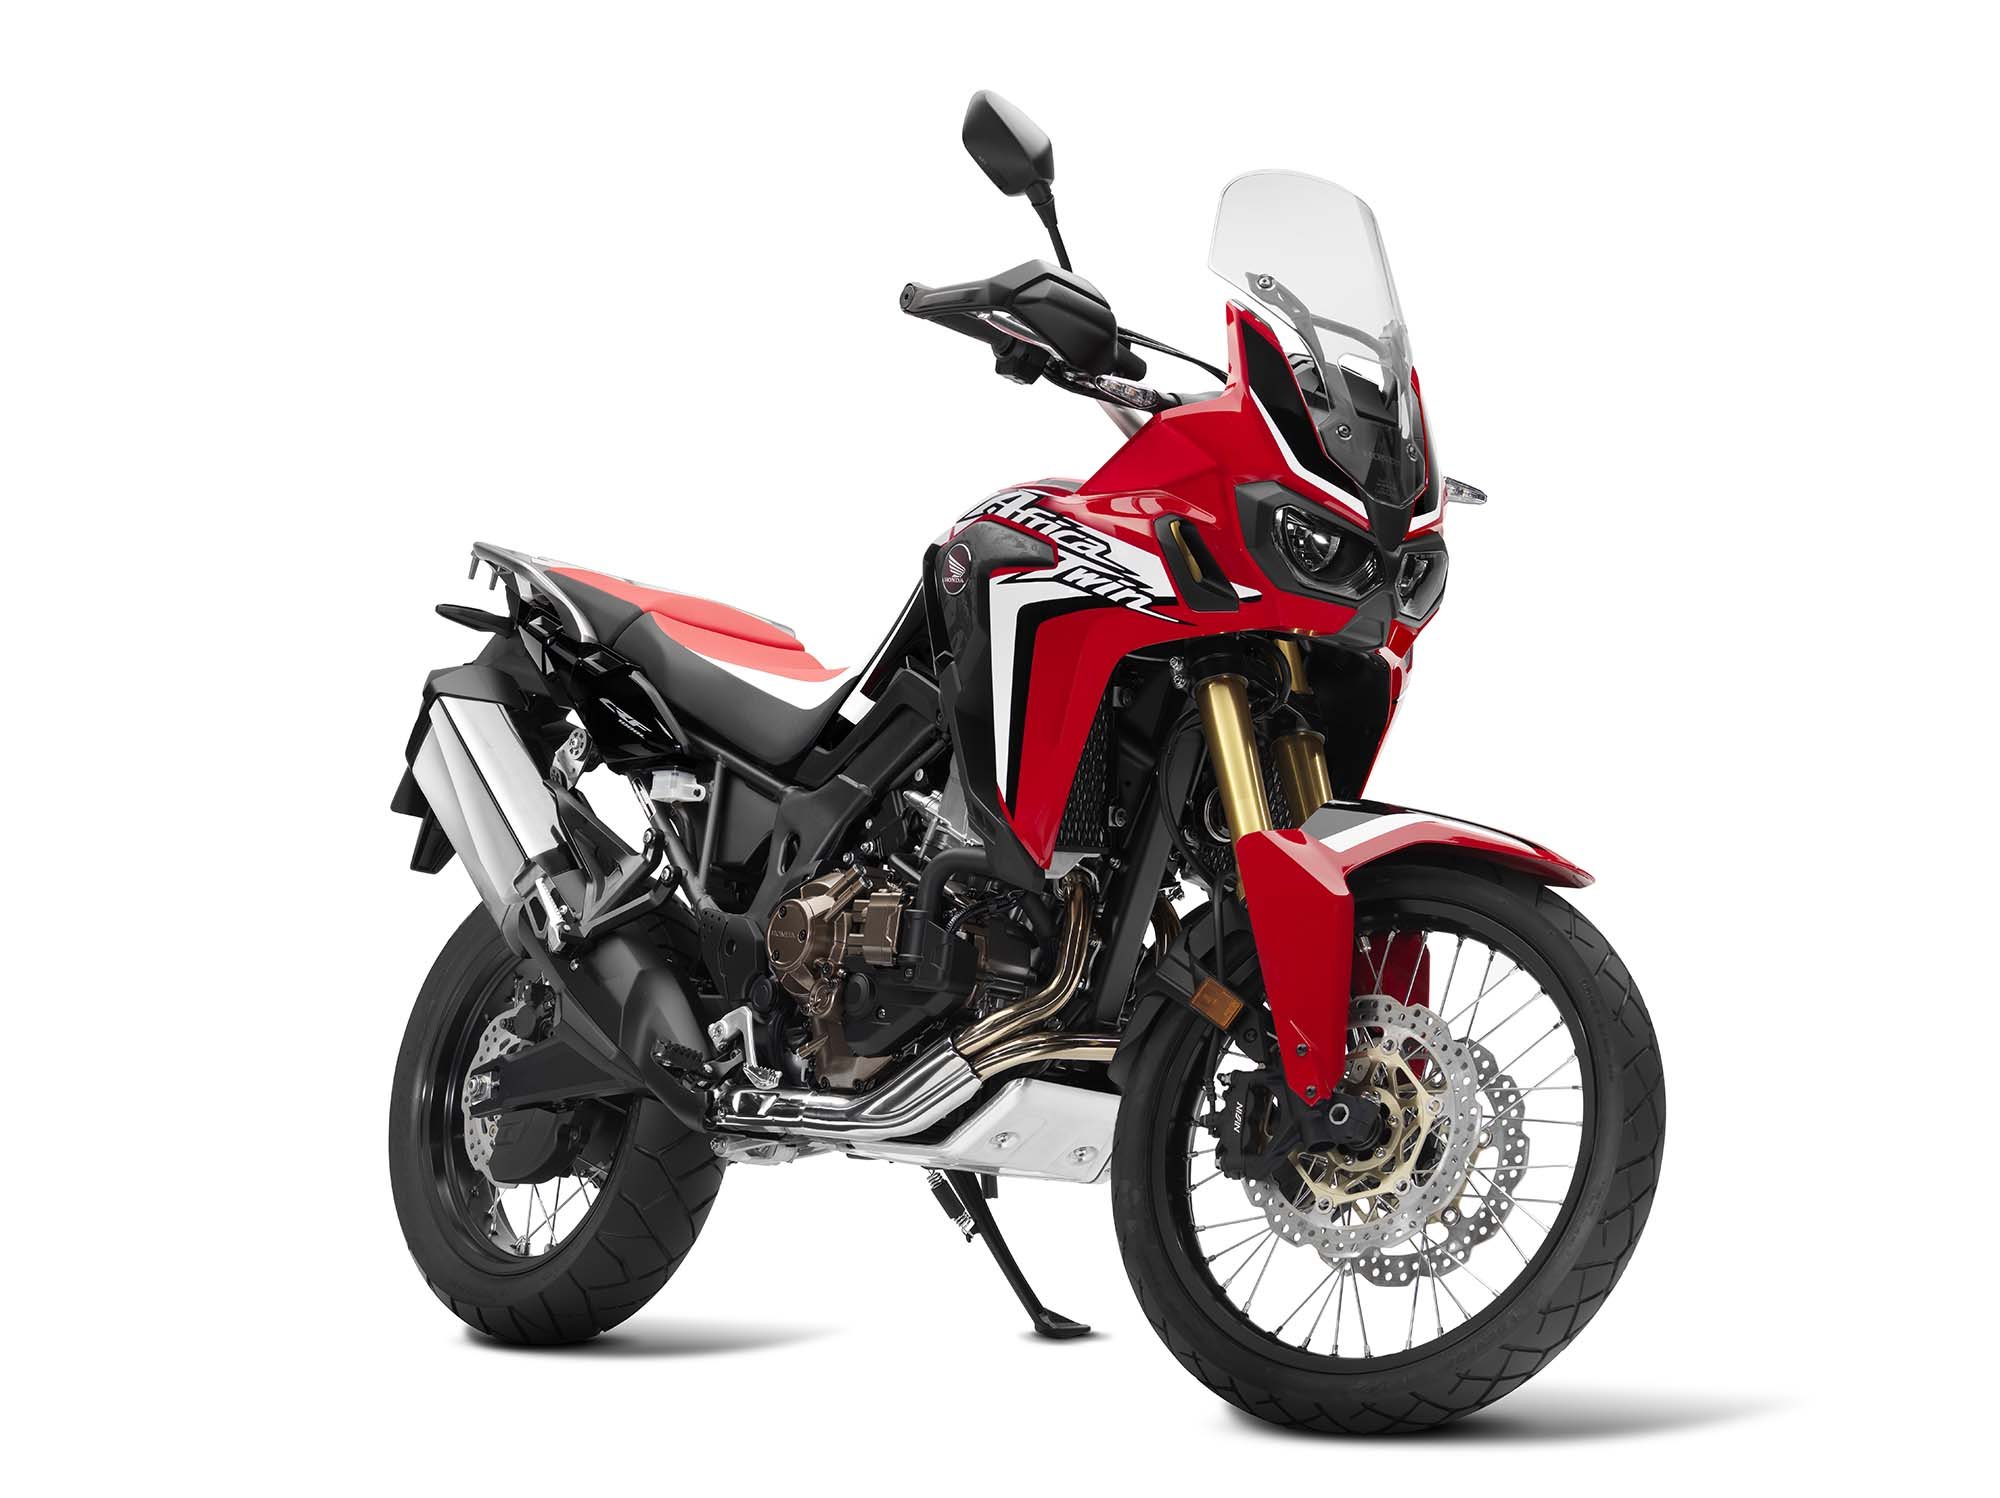 official details photos of the 2016 honda africa twin. Black Bedroom Furniture Sets. Home Design Ideas